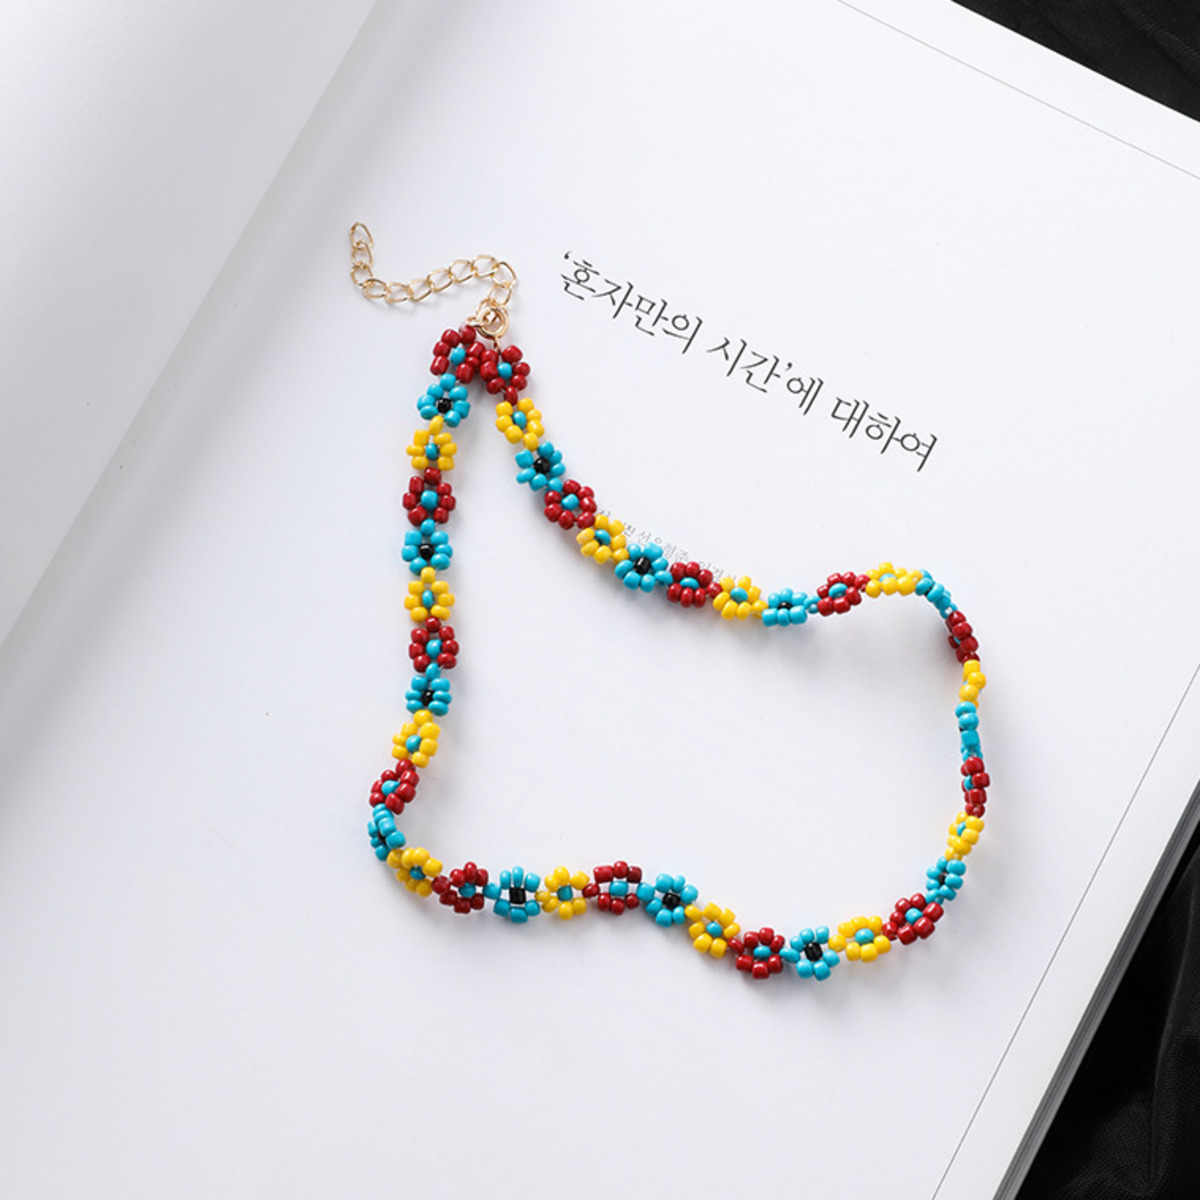 Bohemian Handmade Rainbow Beads Choker Necklace Boho Candy Color Bead Satellite Necklace Women Fashion Jewelry